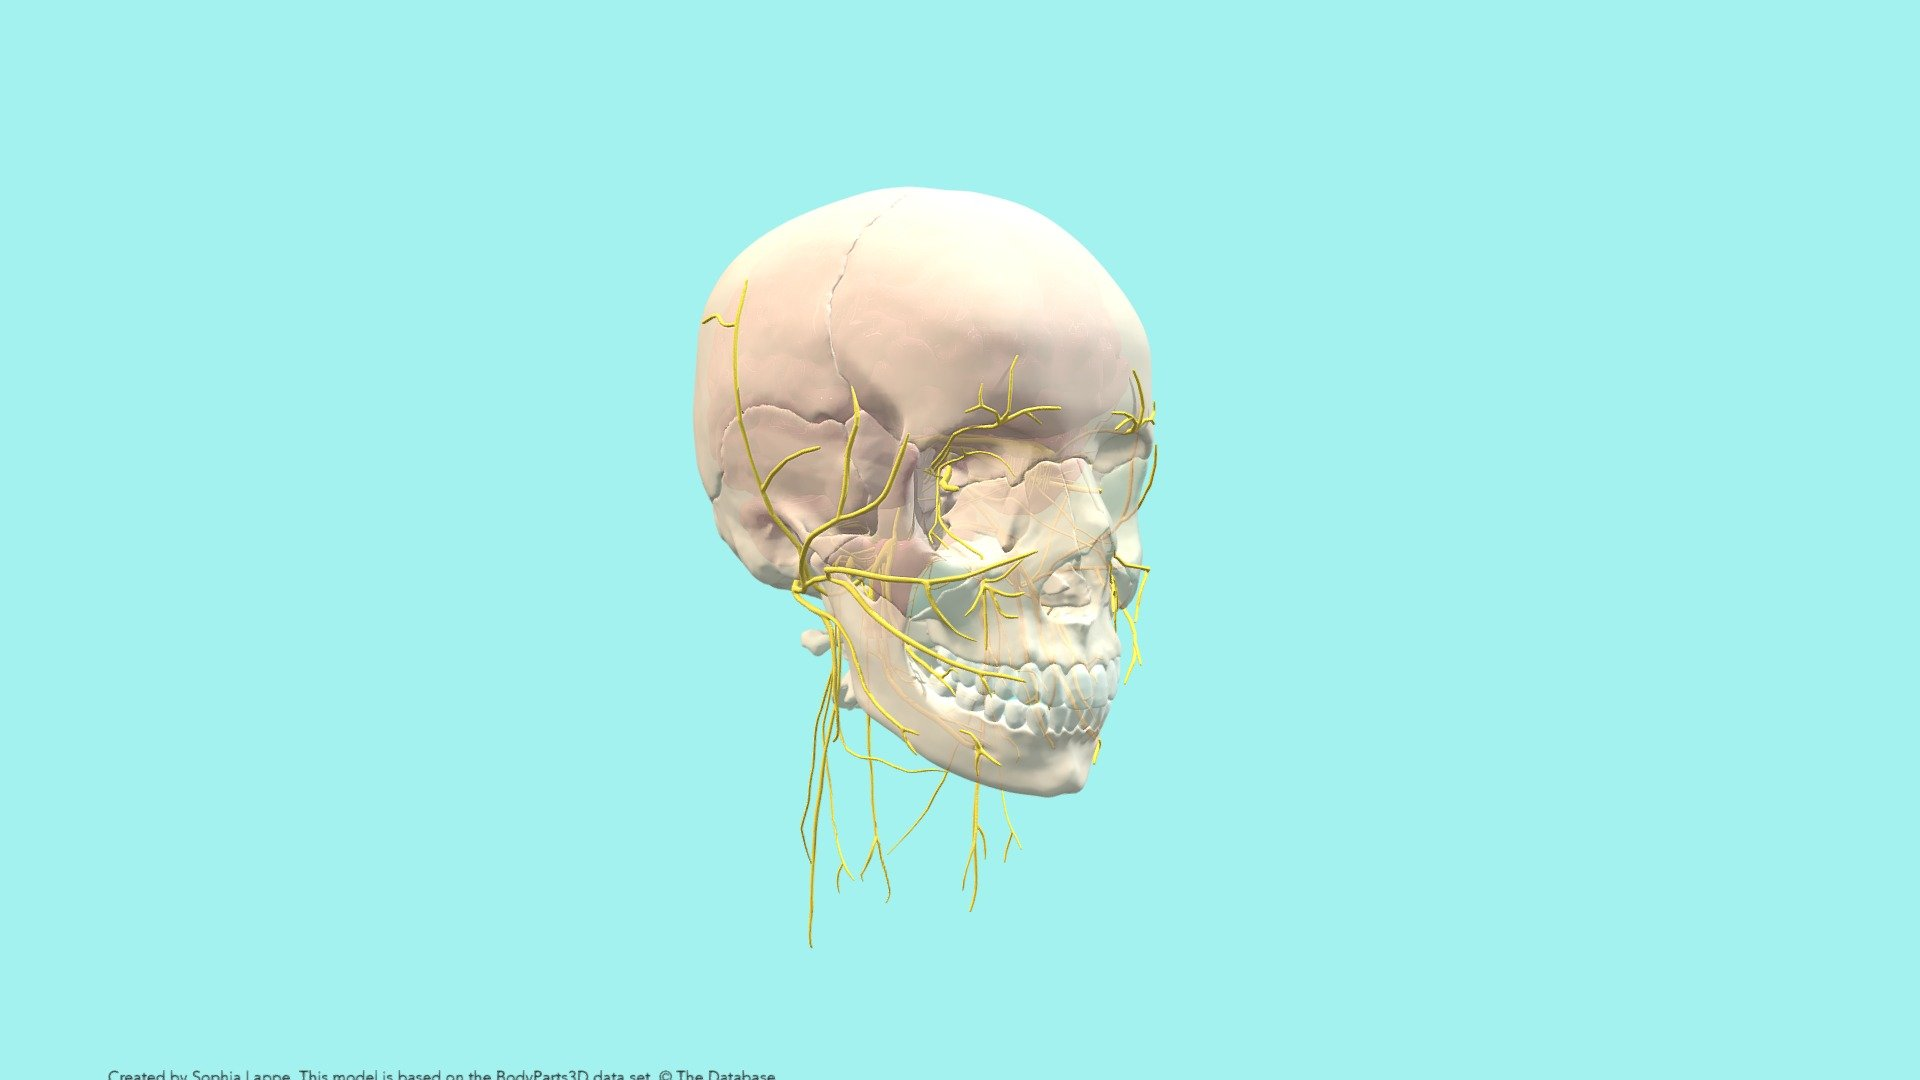 Cranial Nerves and Foramina - Download Free 3D model by University of Dundee, CAHID (@anatomy_dundee) [a9358ee]